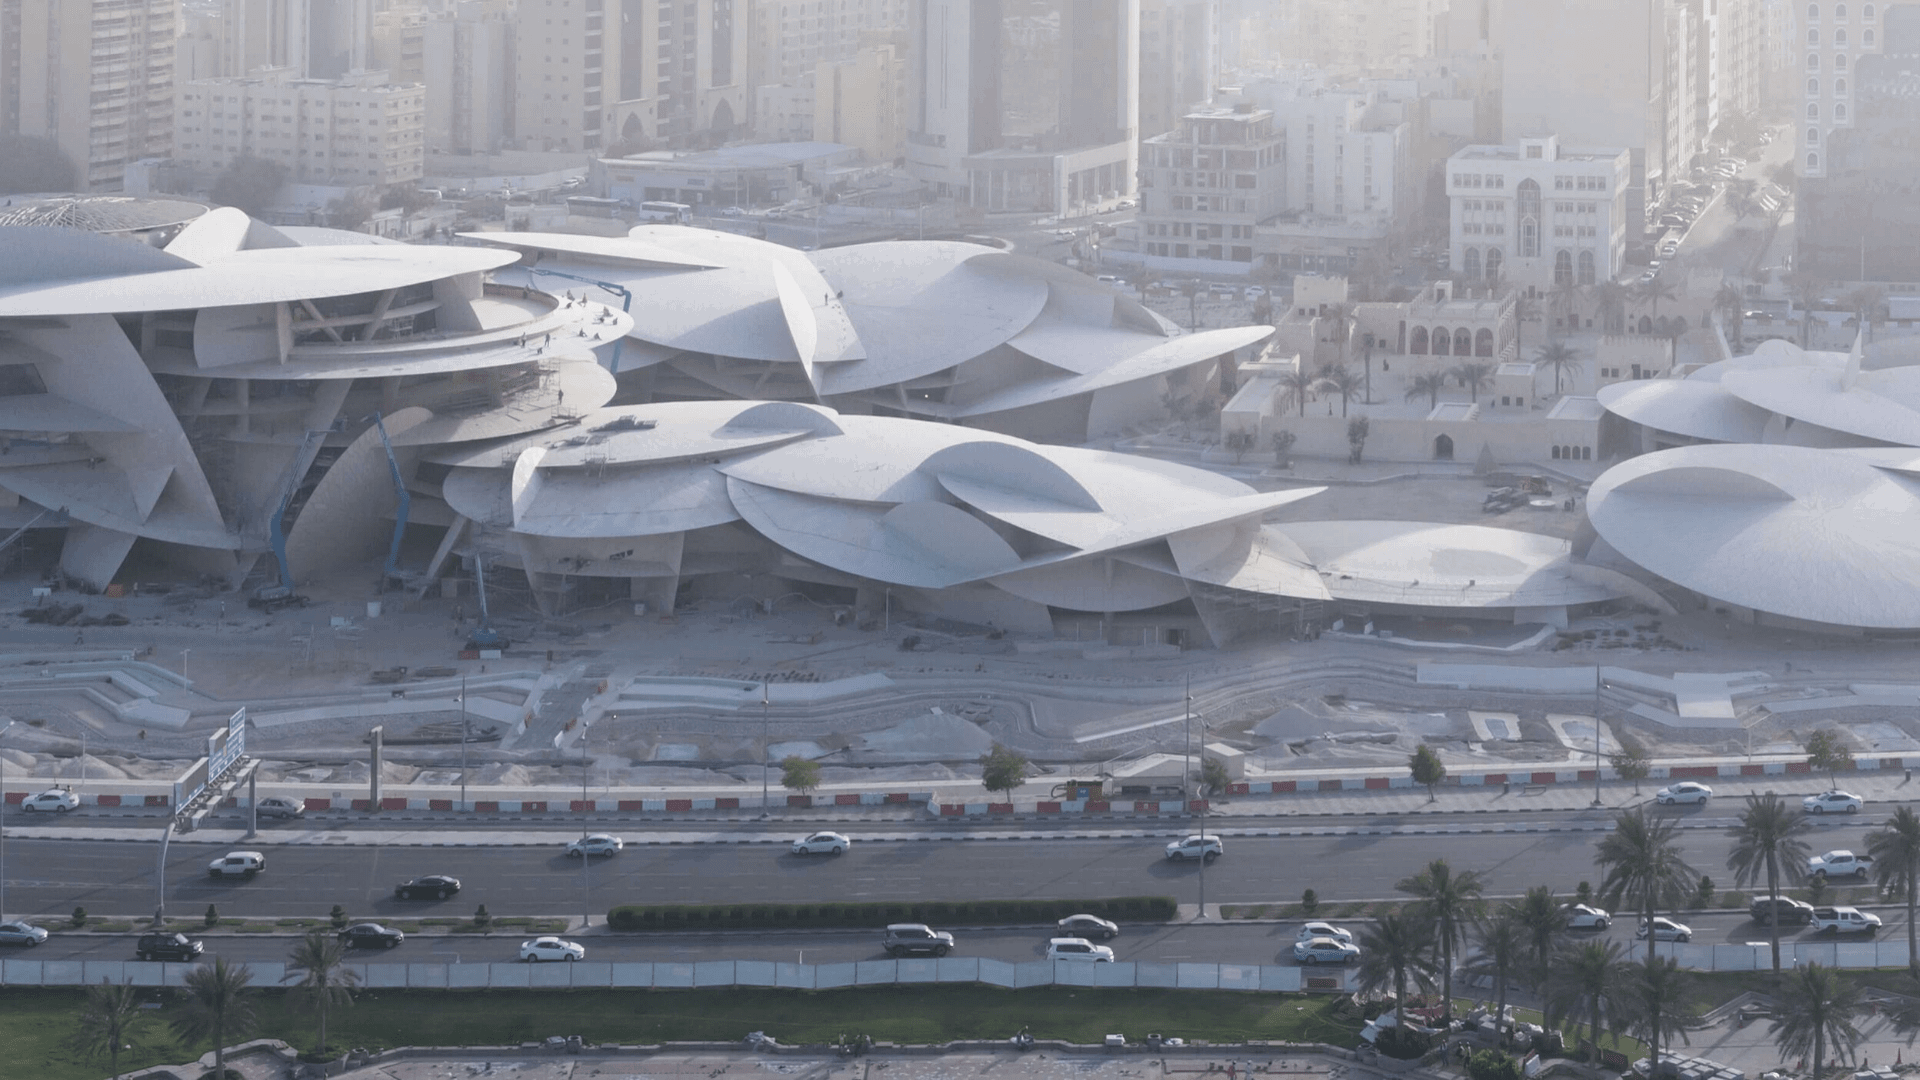 The Qatar National Museum, Doha Nuaire Case Study